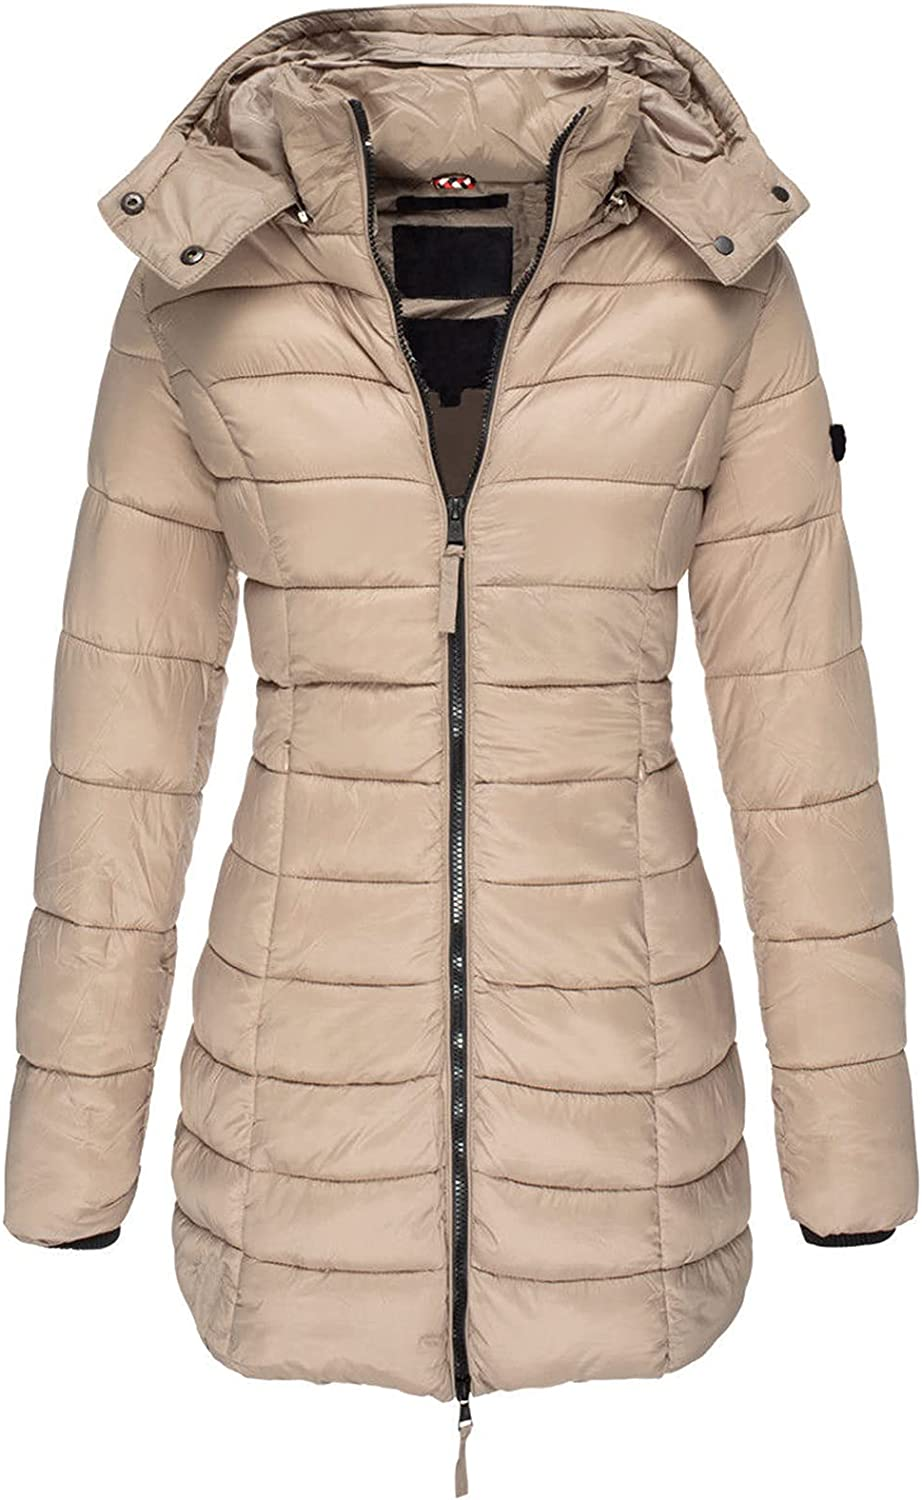 PEHMEA Women's Winter Warm Hooded Down Jacket Slim Fit Mid Long Quilted Padded Puffer Coat